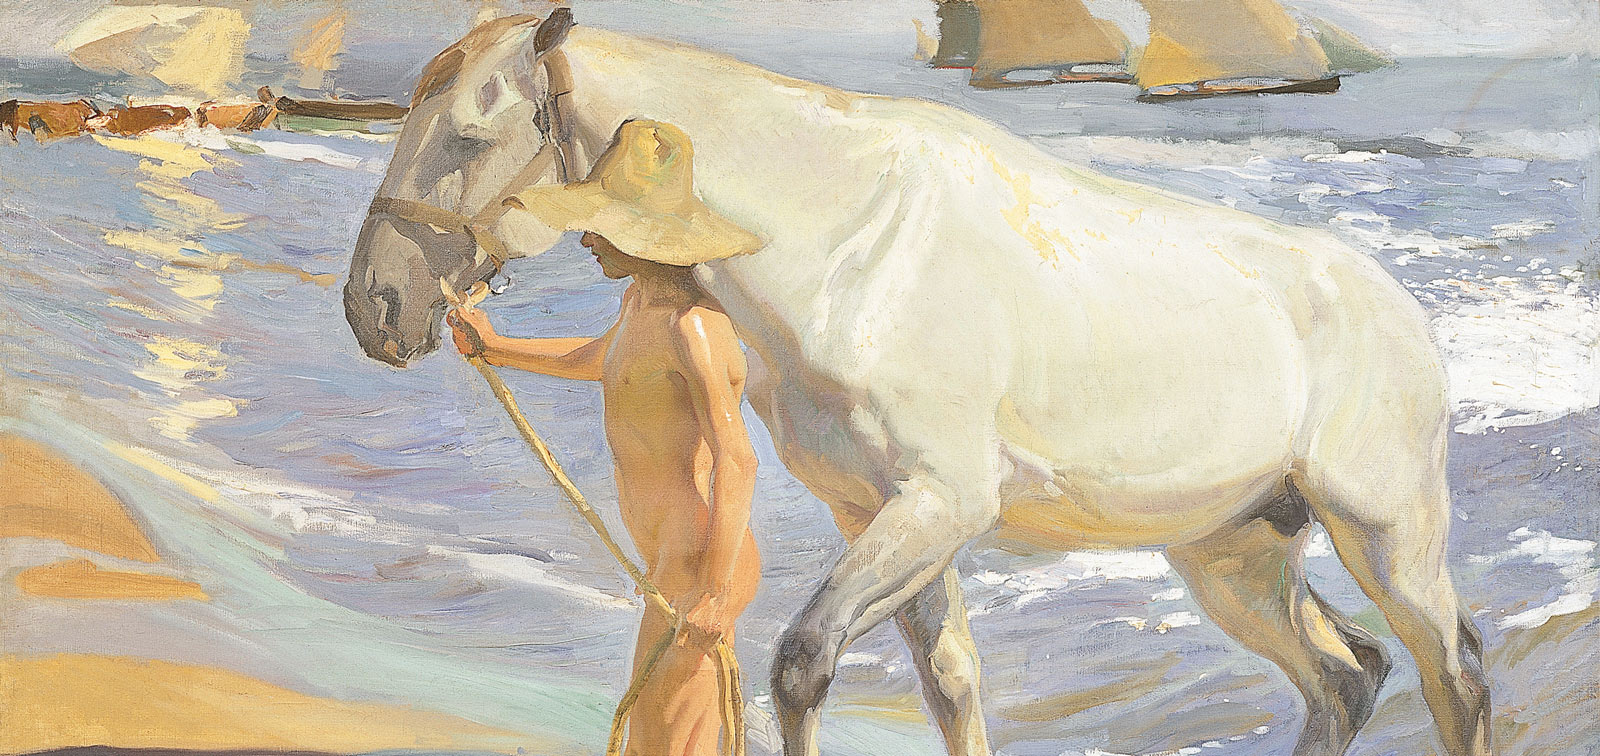 DETAIL OF 'THE HORSE'S BATH' THAT SOROLLA IS PAINTING IN THE PHOTO ABOVE  2 X 2.5 M CANVAS SIZE (MUSEO DEL PRADO)